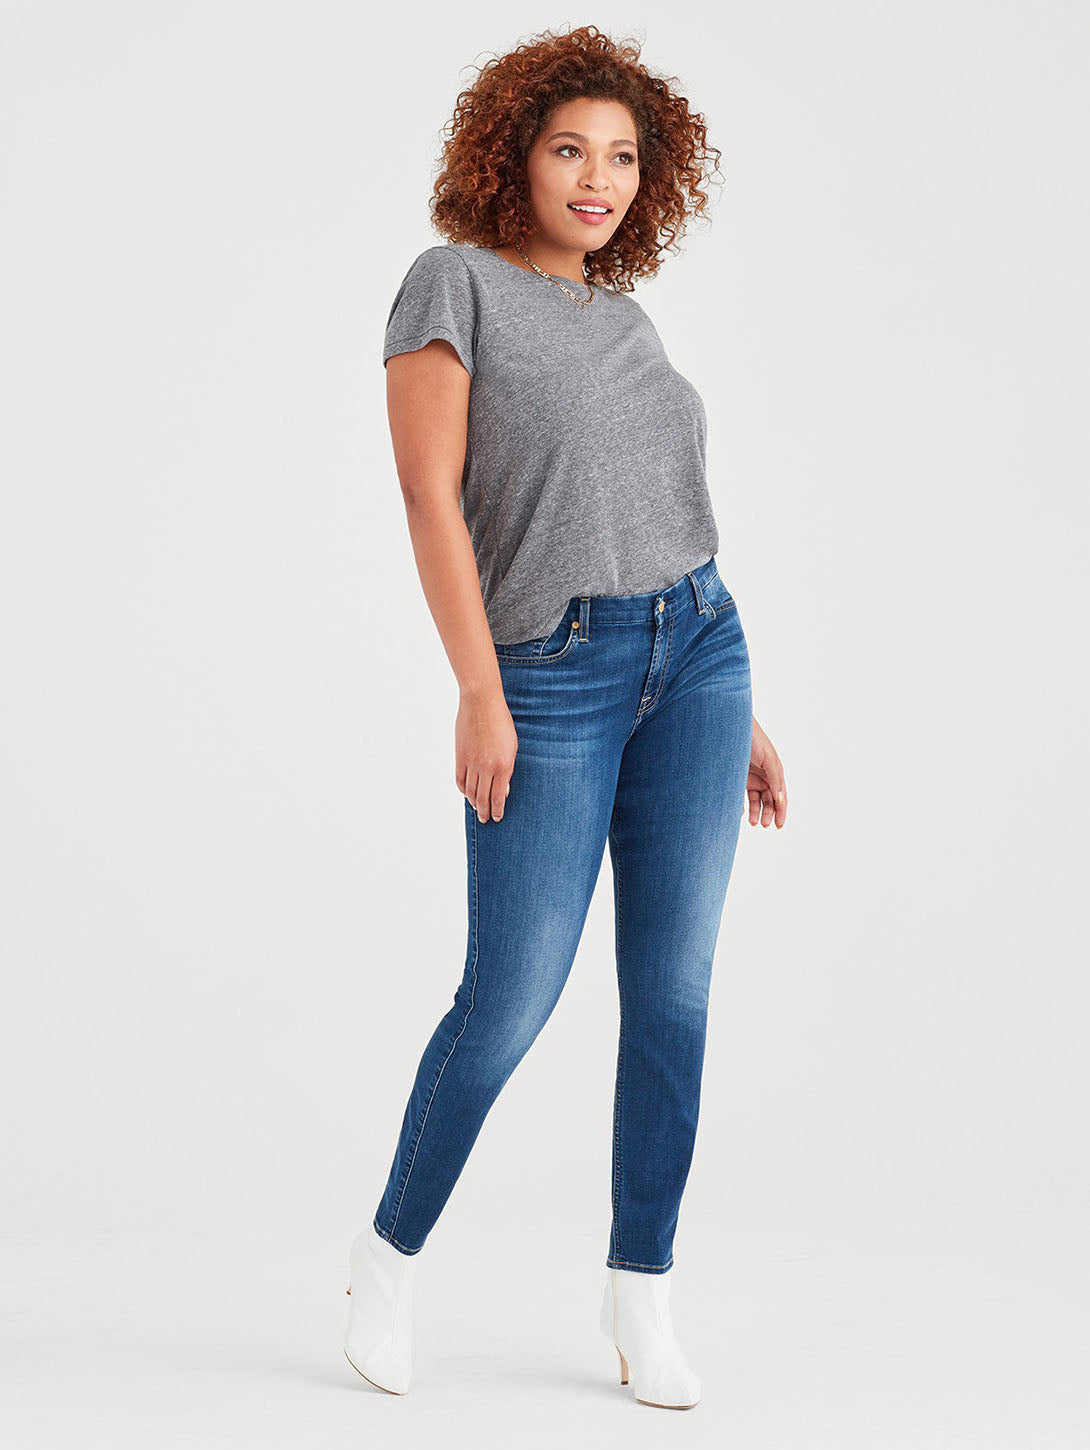 B(air) Denim Ankle Skinny Jean - Duchess-Seven for all Mankind-Over the Rainbow